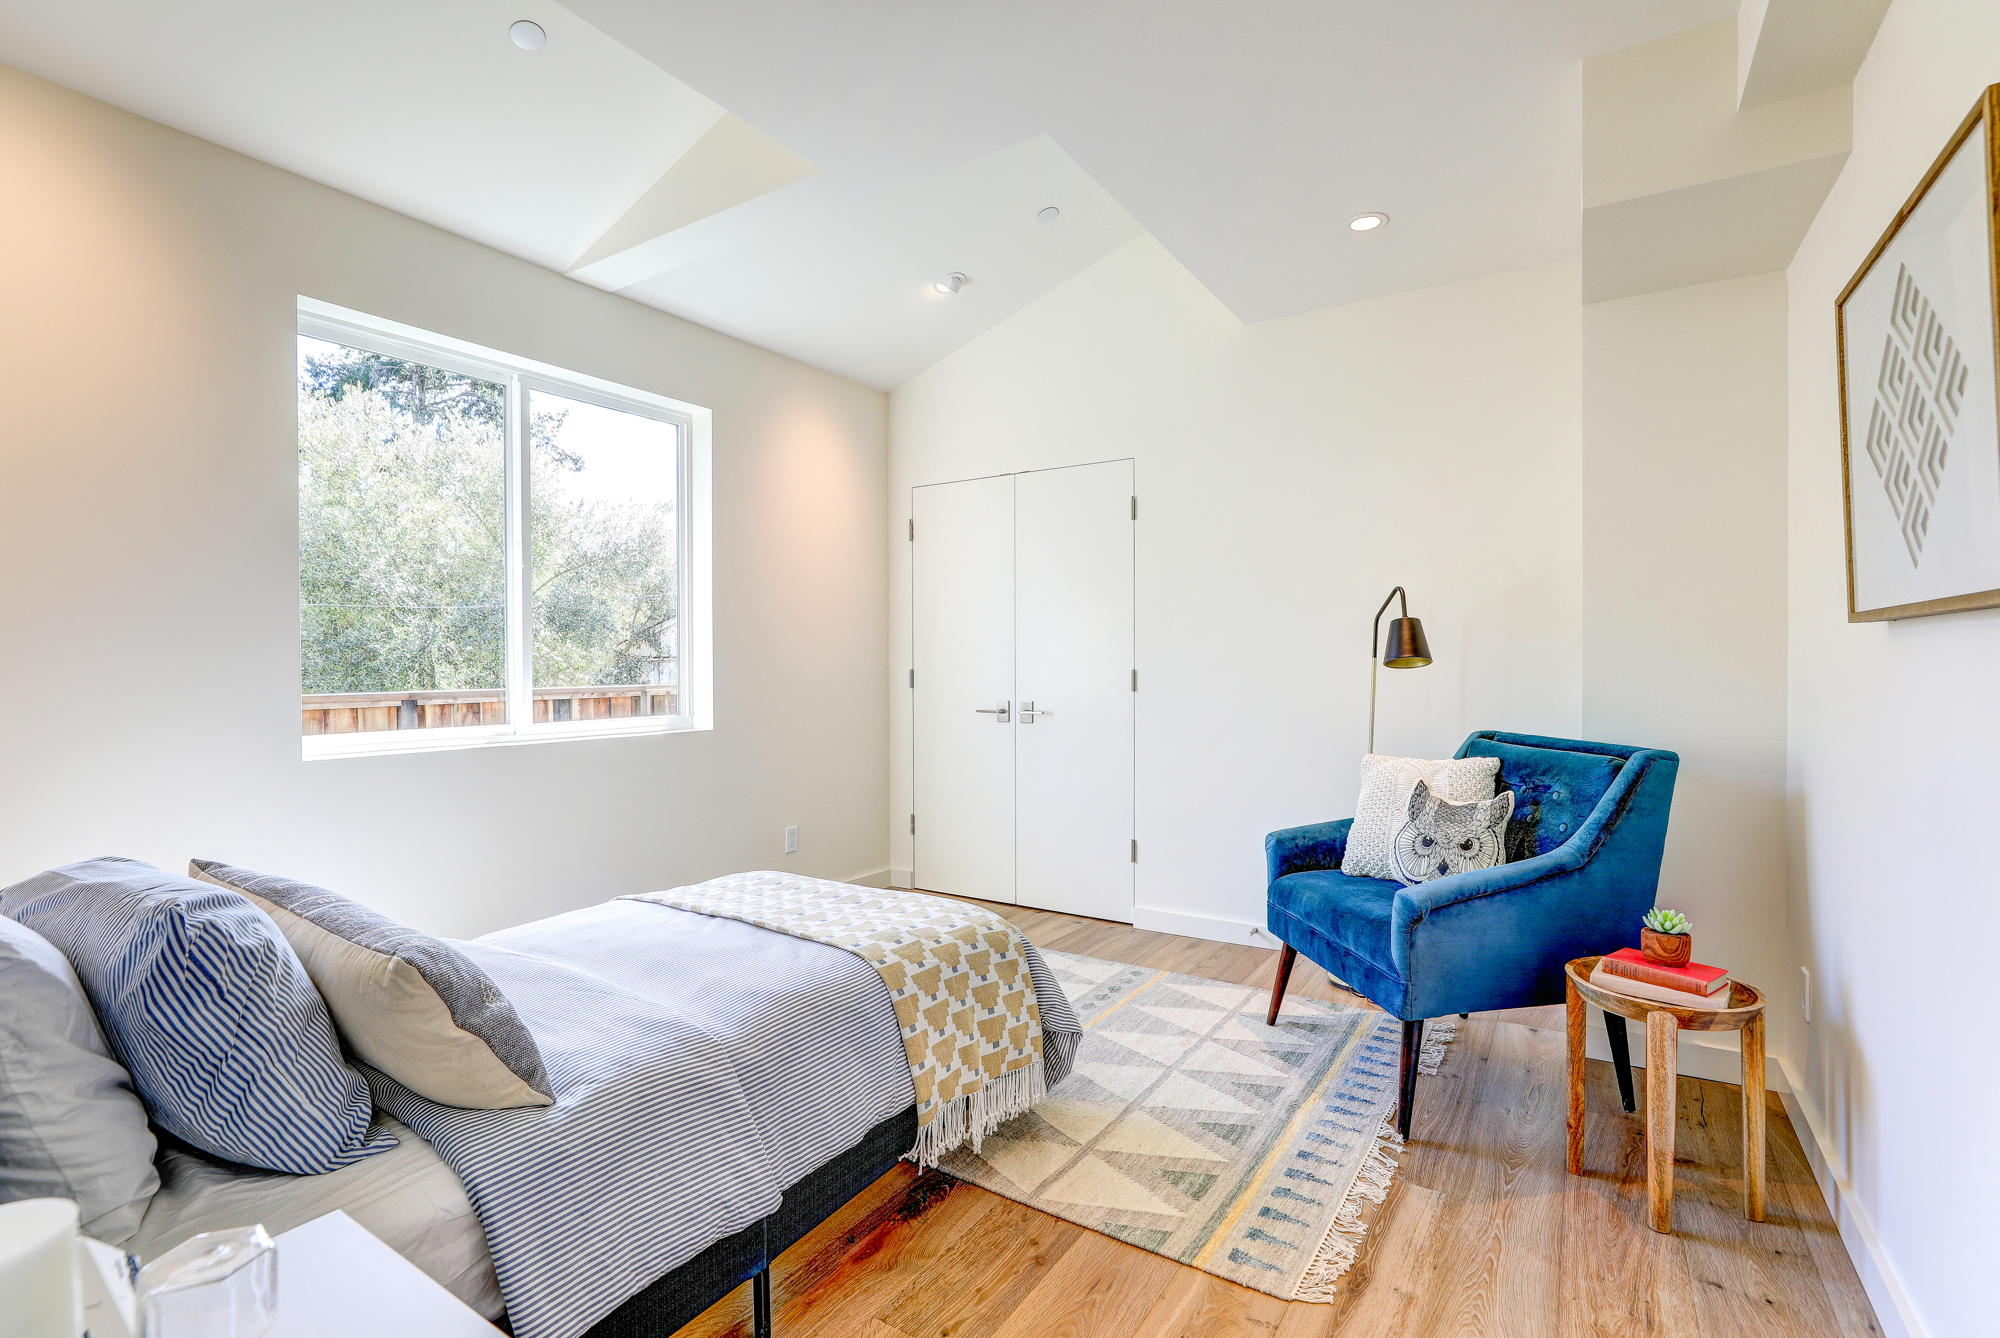 38 Ryan Avenue, Mill Valley - Sycamore Park Homes for sale - 40- Listed by Team Own Marin with Compass Real Estate.jpg